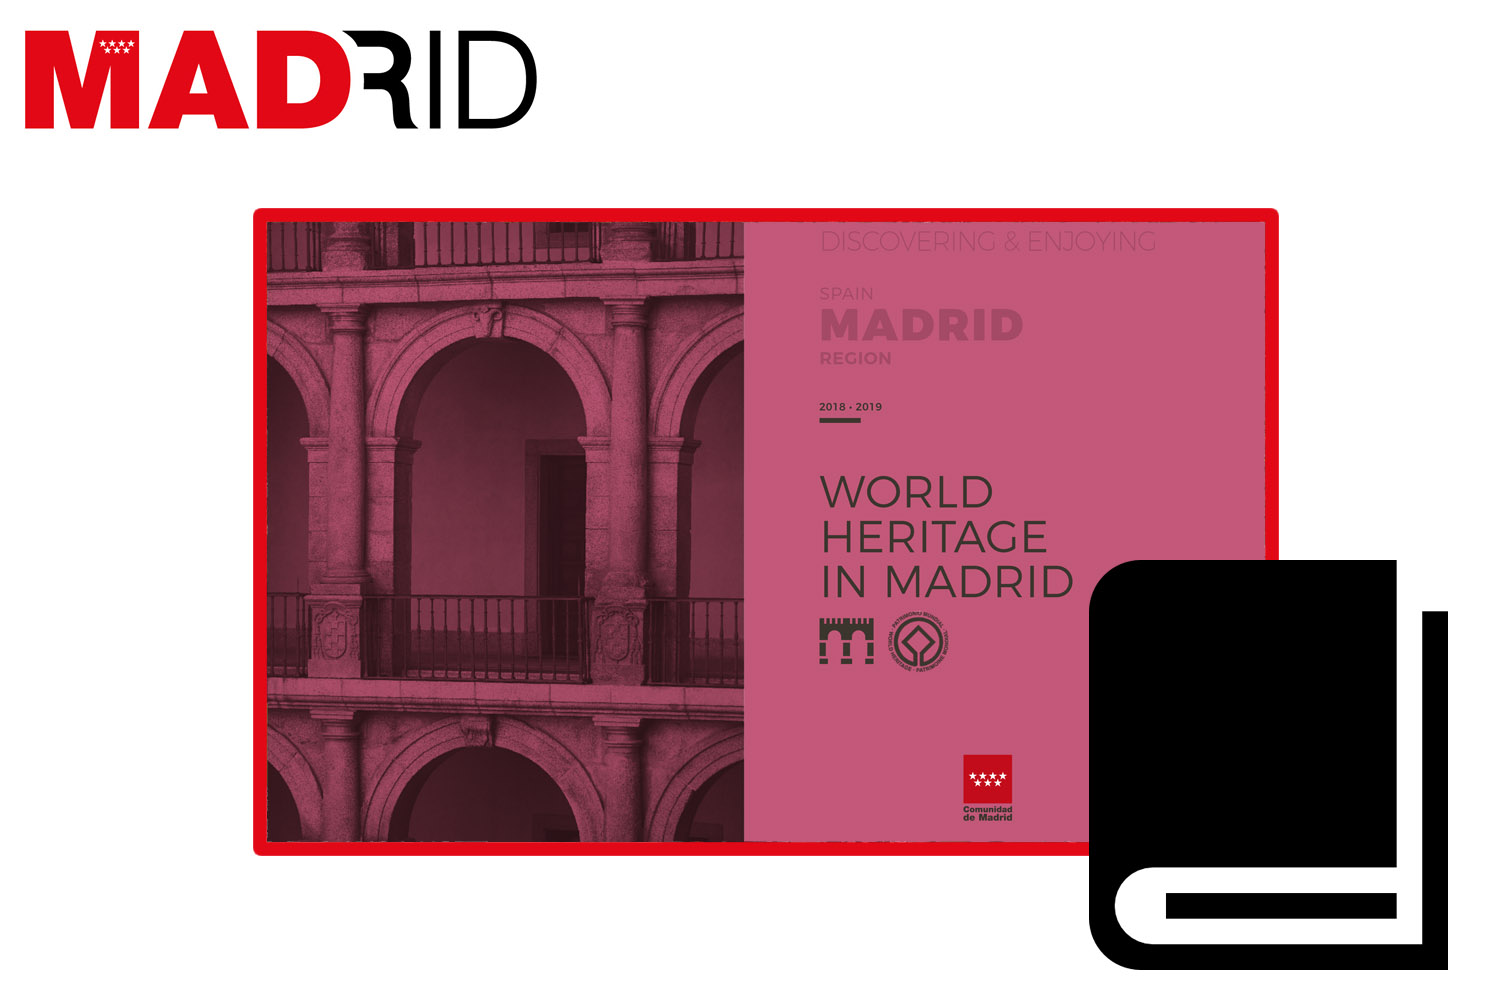 World Heritage in Madrid